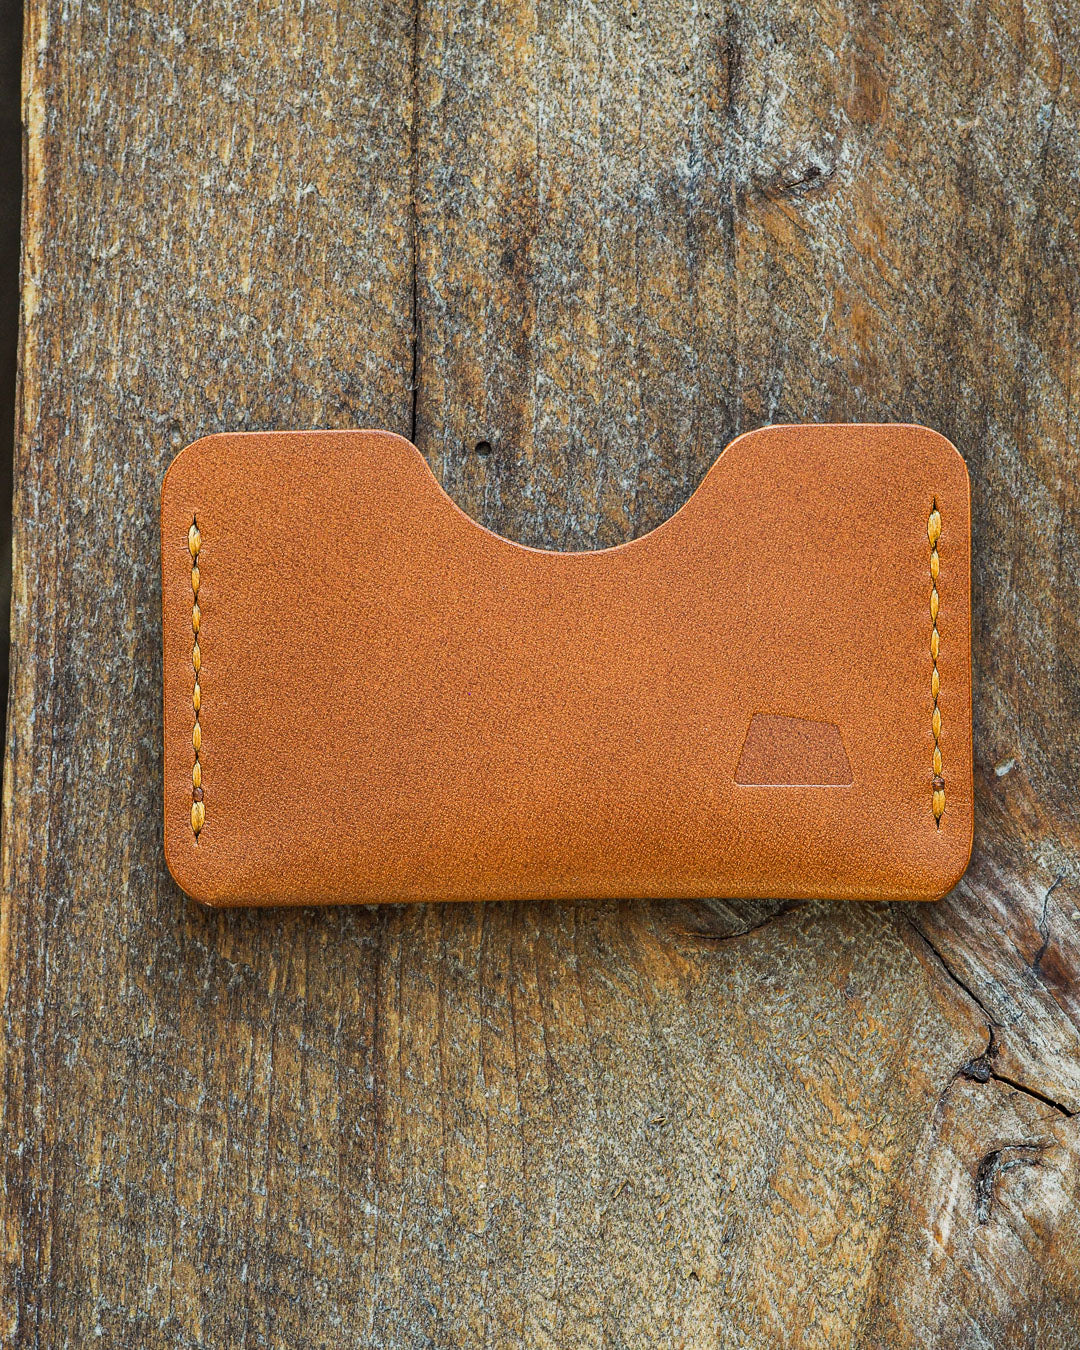 Luava handmade leather wallet handcrafted card holder cardholder made in finland absolute gold koala cognac thread front